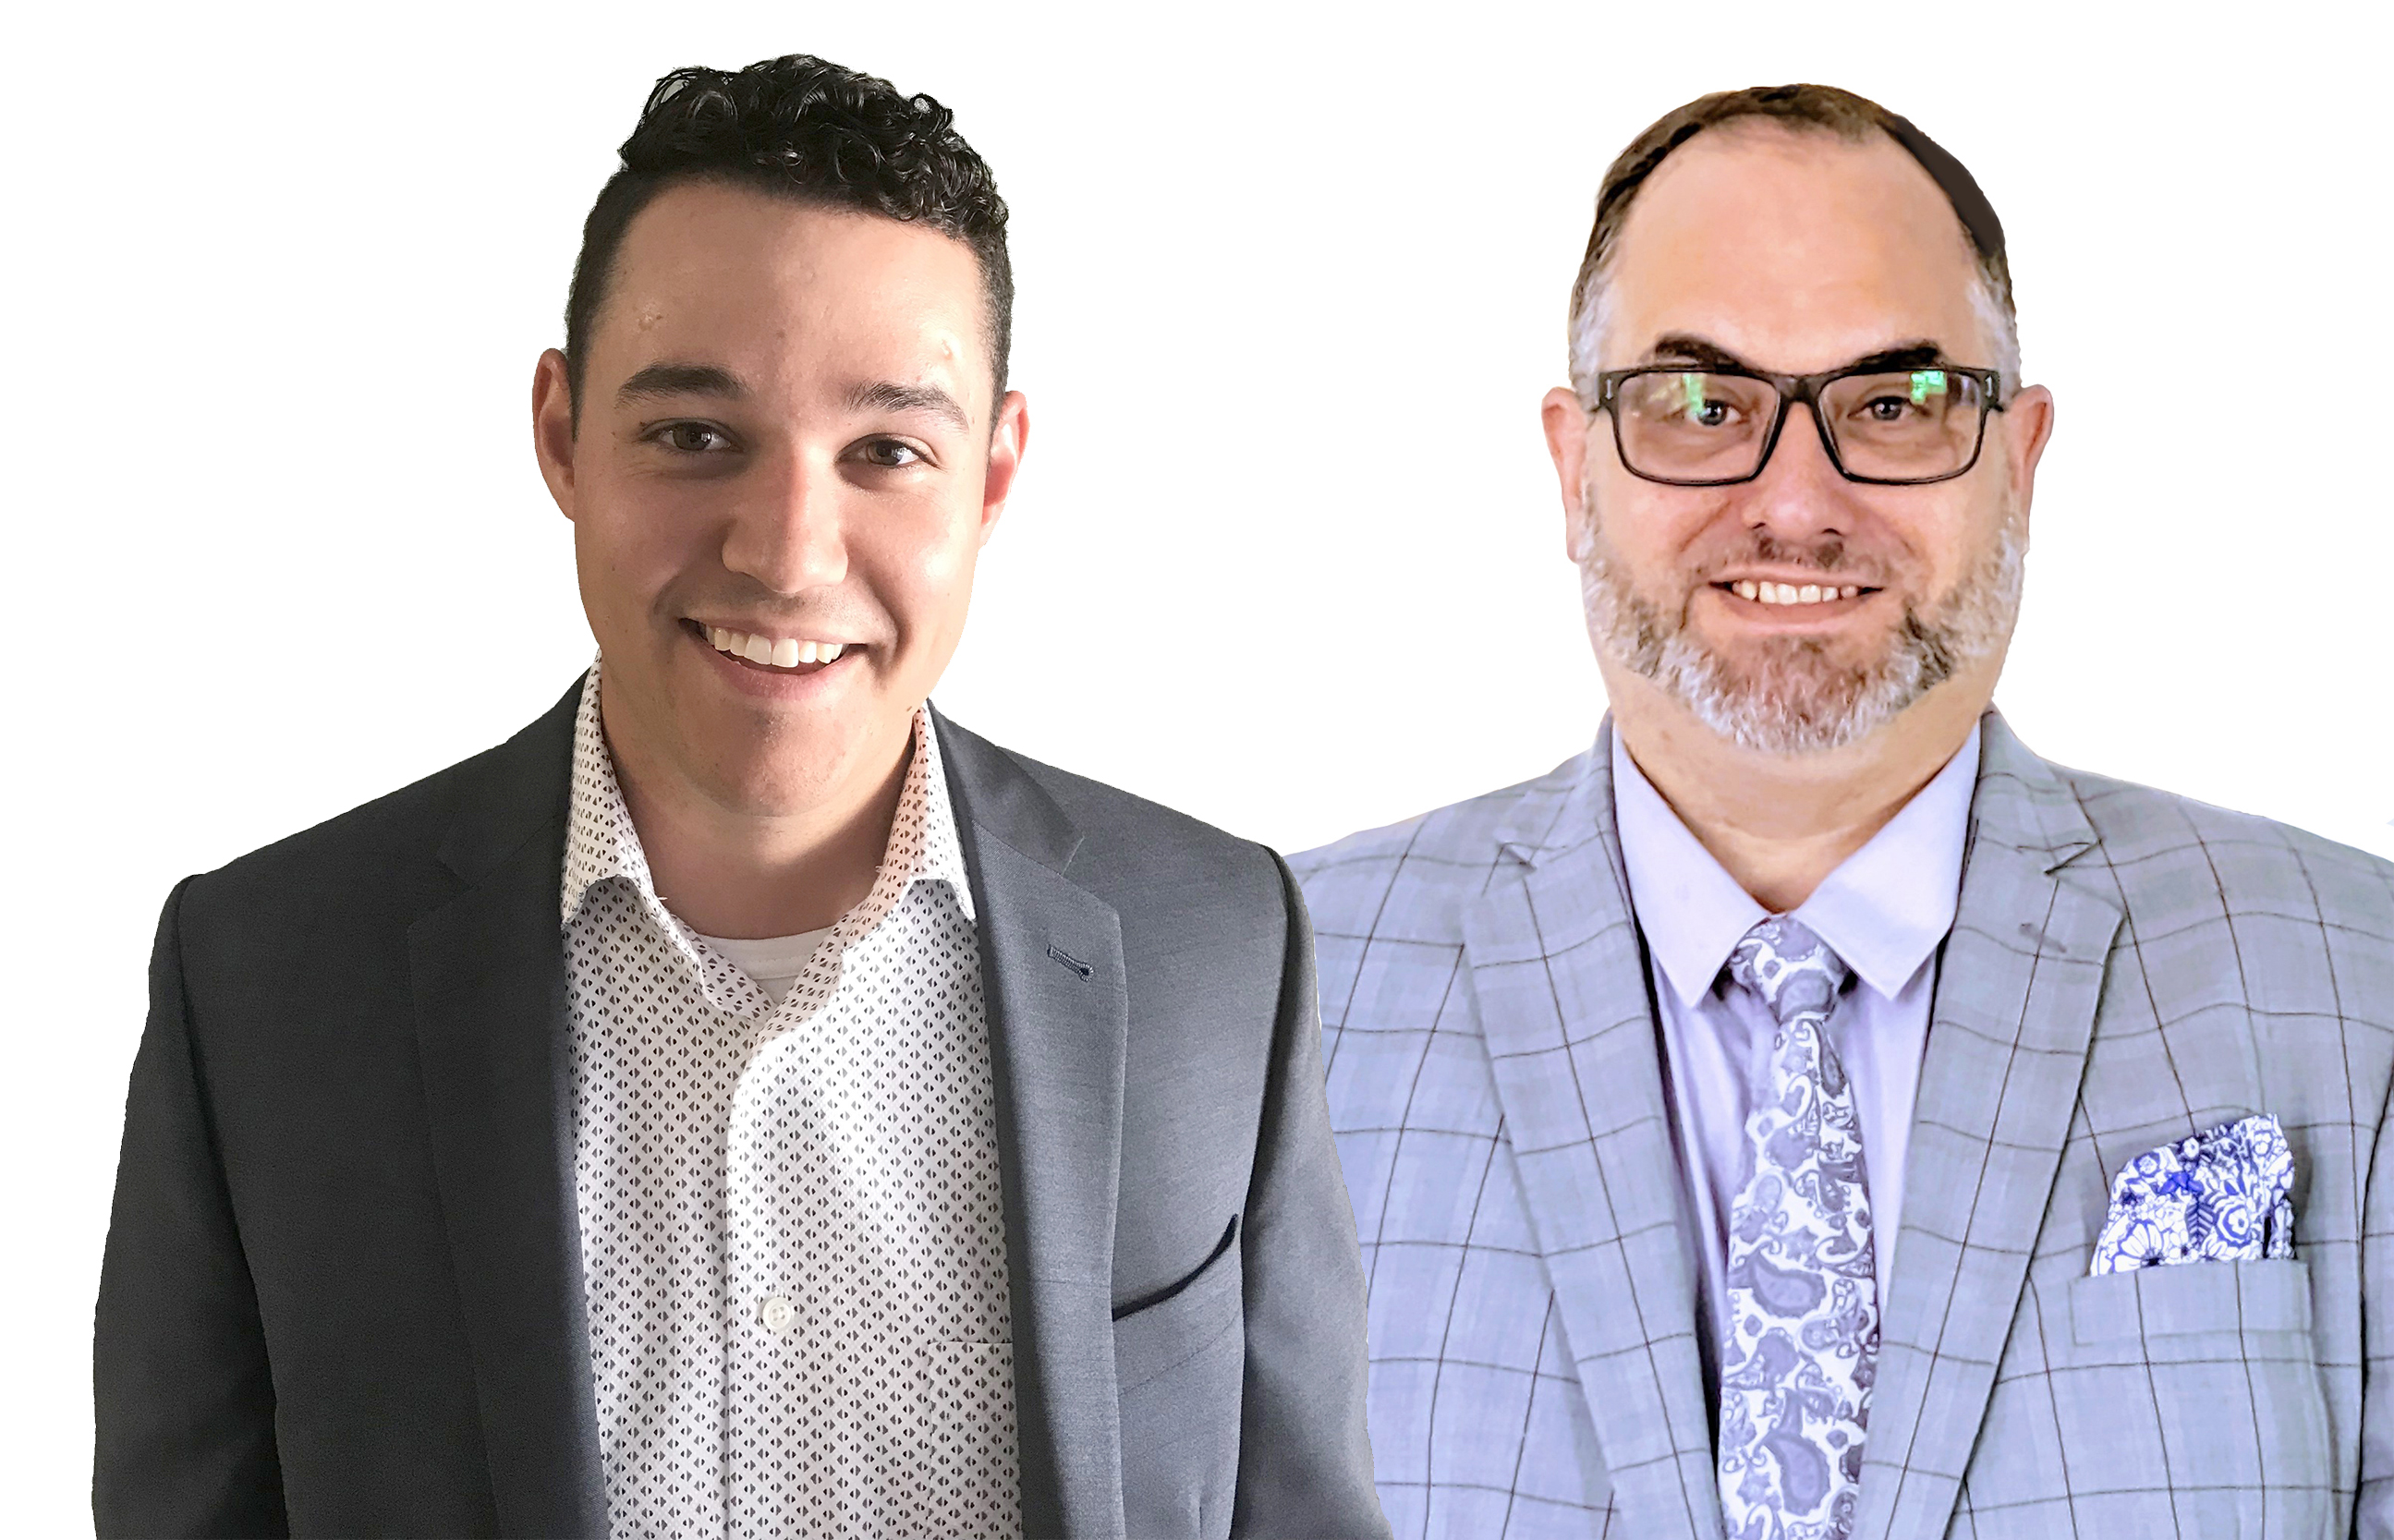 APPOINTMENT OF MATHIEU GAUTHIER AND ALAIN ST-PIERRE